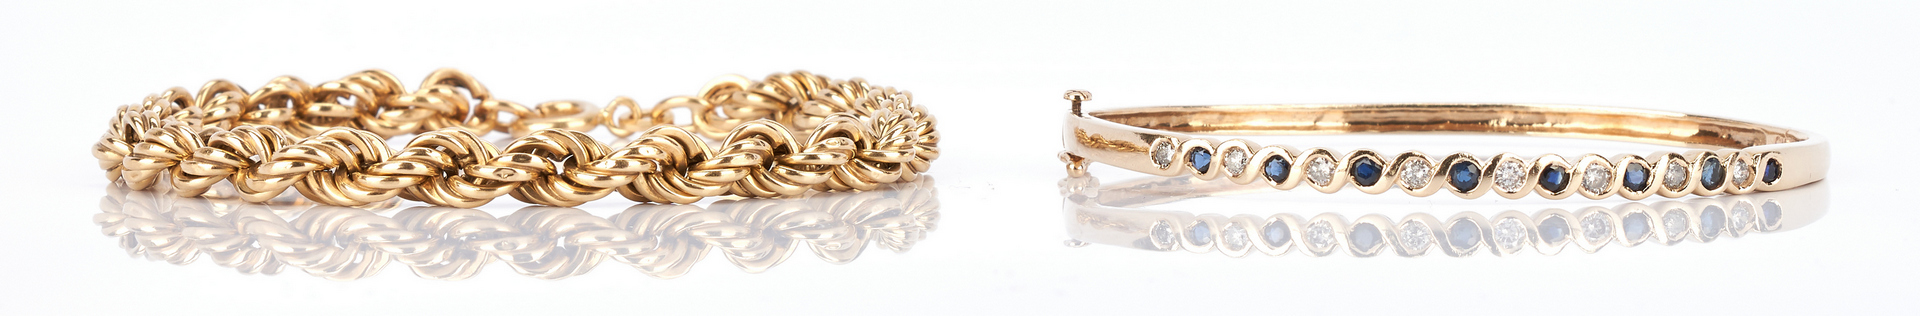 Lot 786: 2 Ladies Gold Bracelets, 10K & 18K